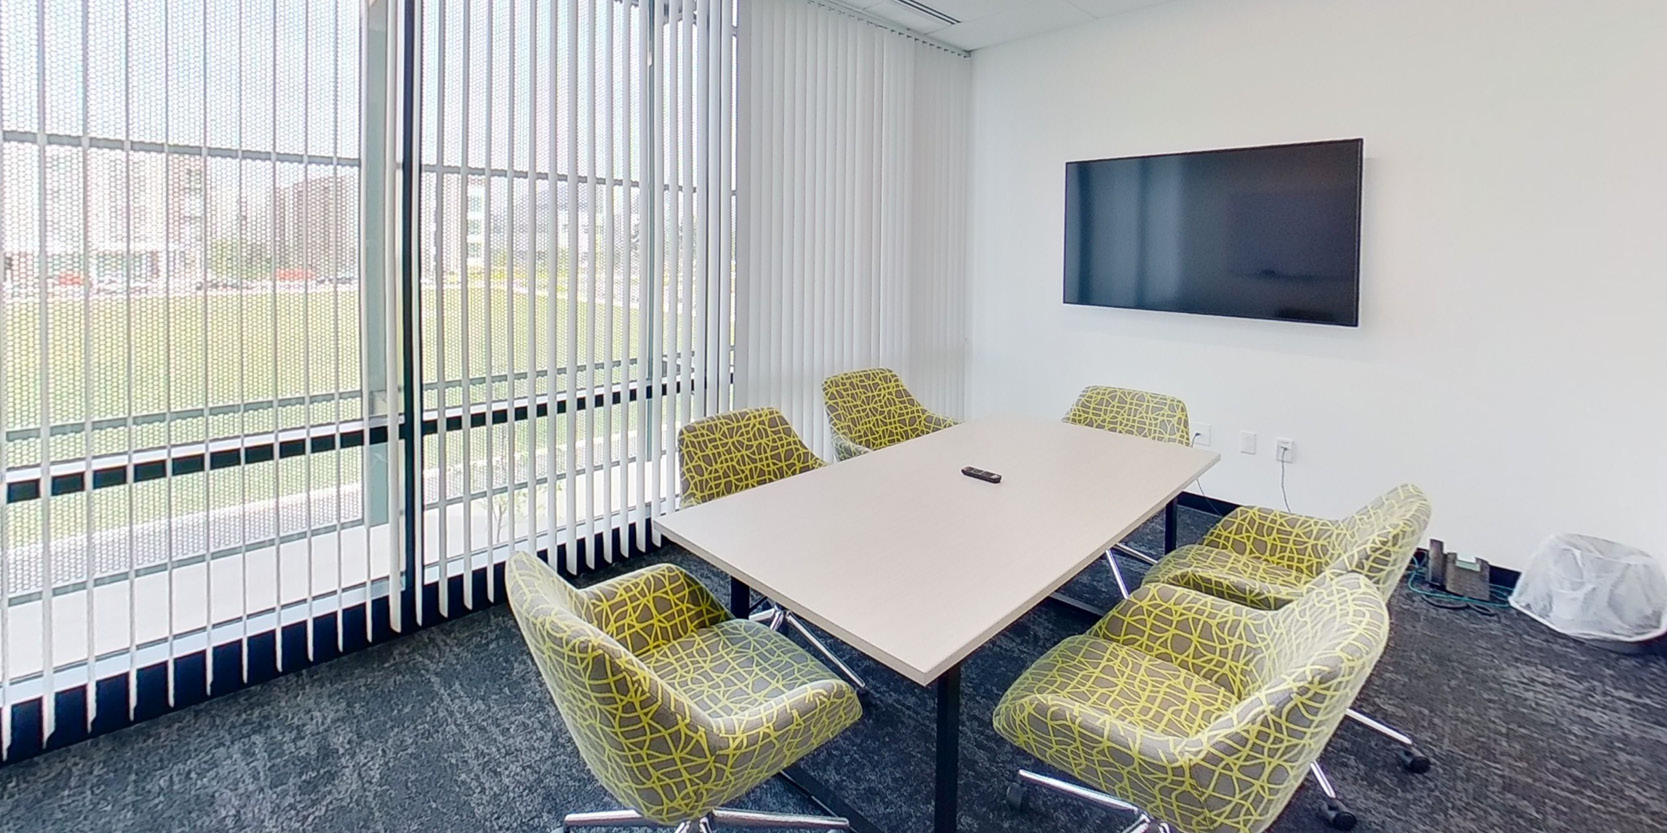 The Purdue Research Foundation moved multiple operational units from KPTC to Convergence, creating flexibility to lease office space to corporate partners.